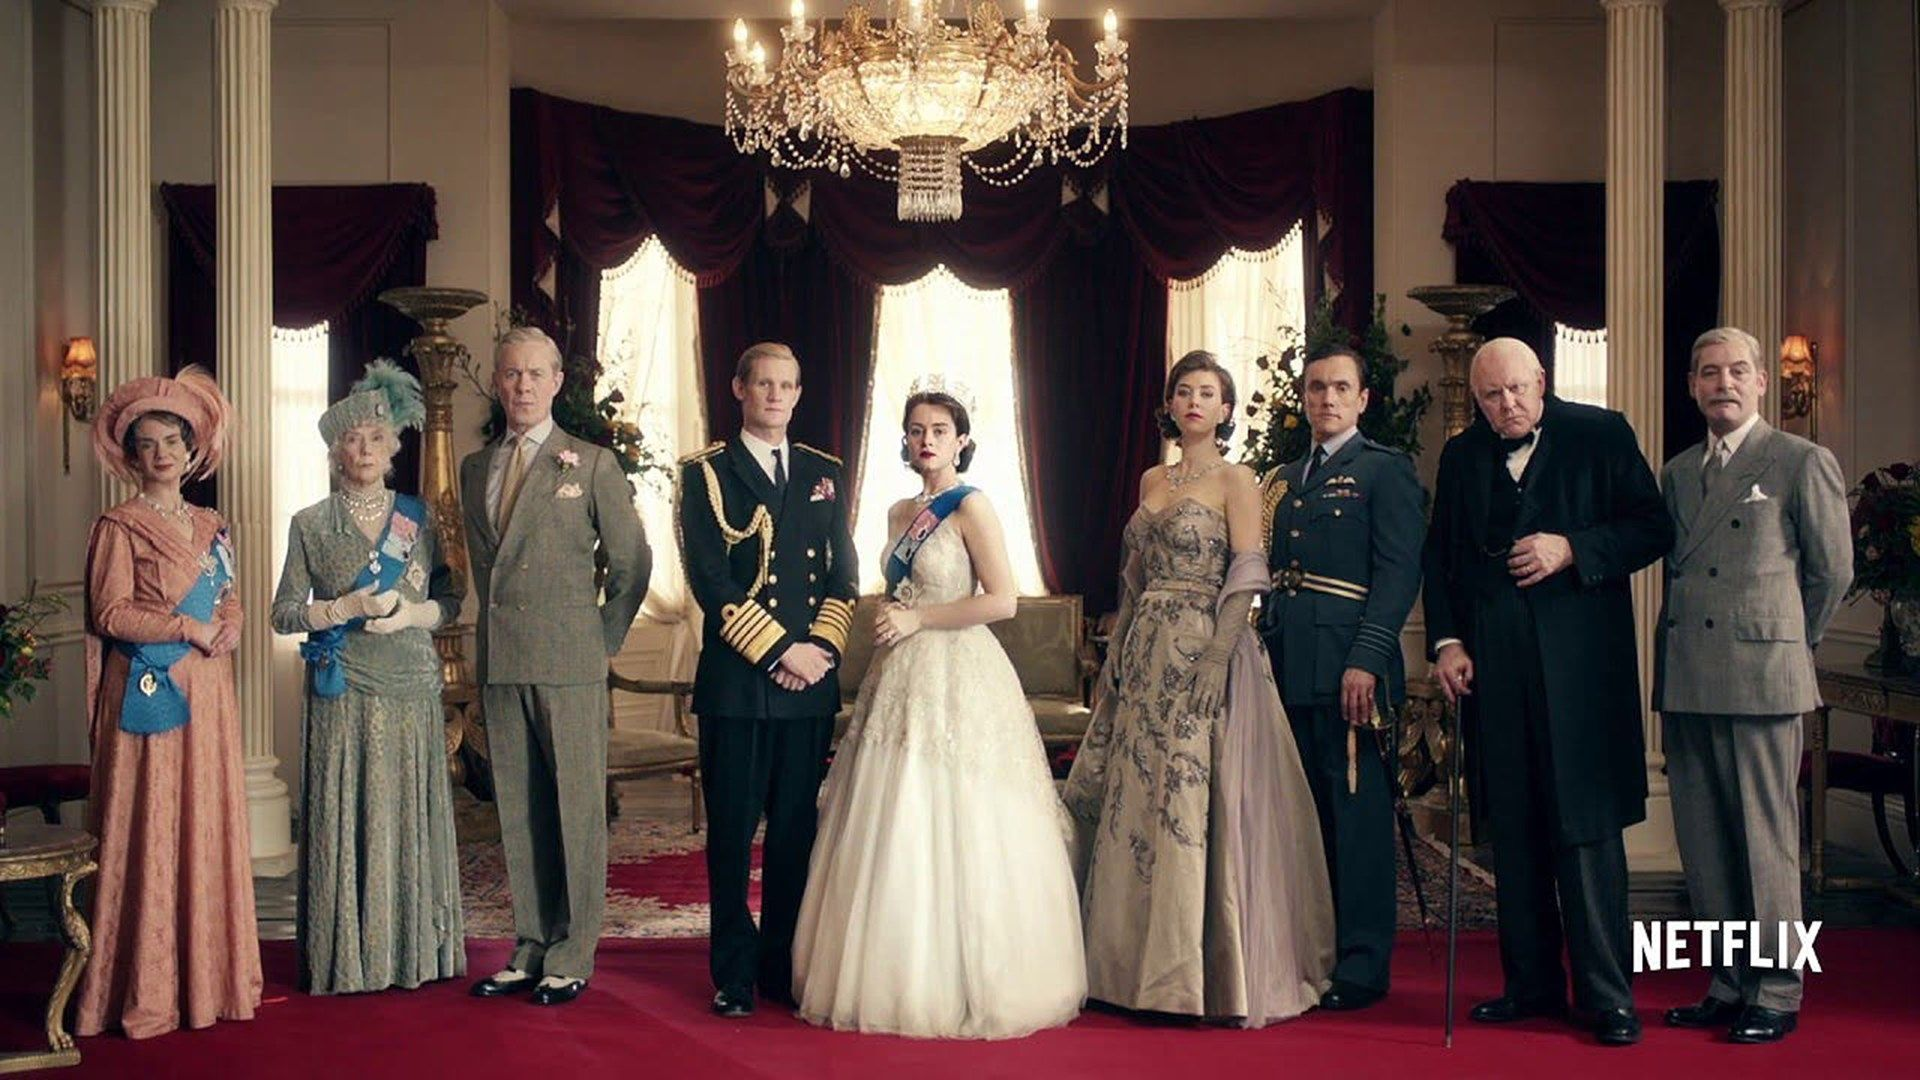 The Crown Netflix Wallpapers free download